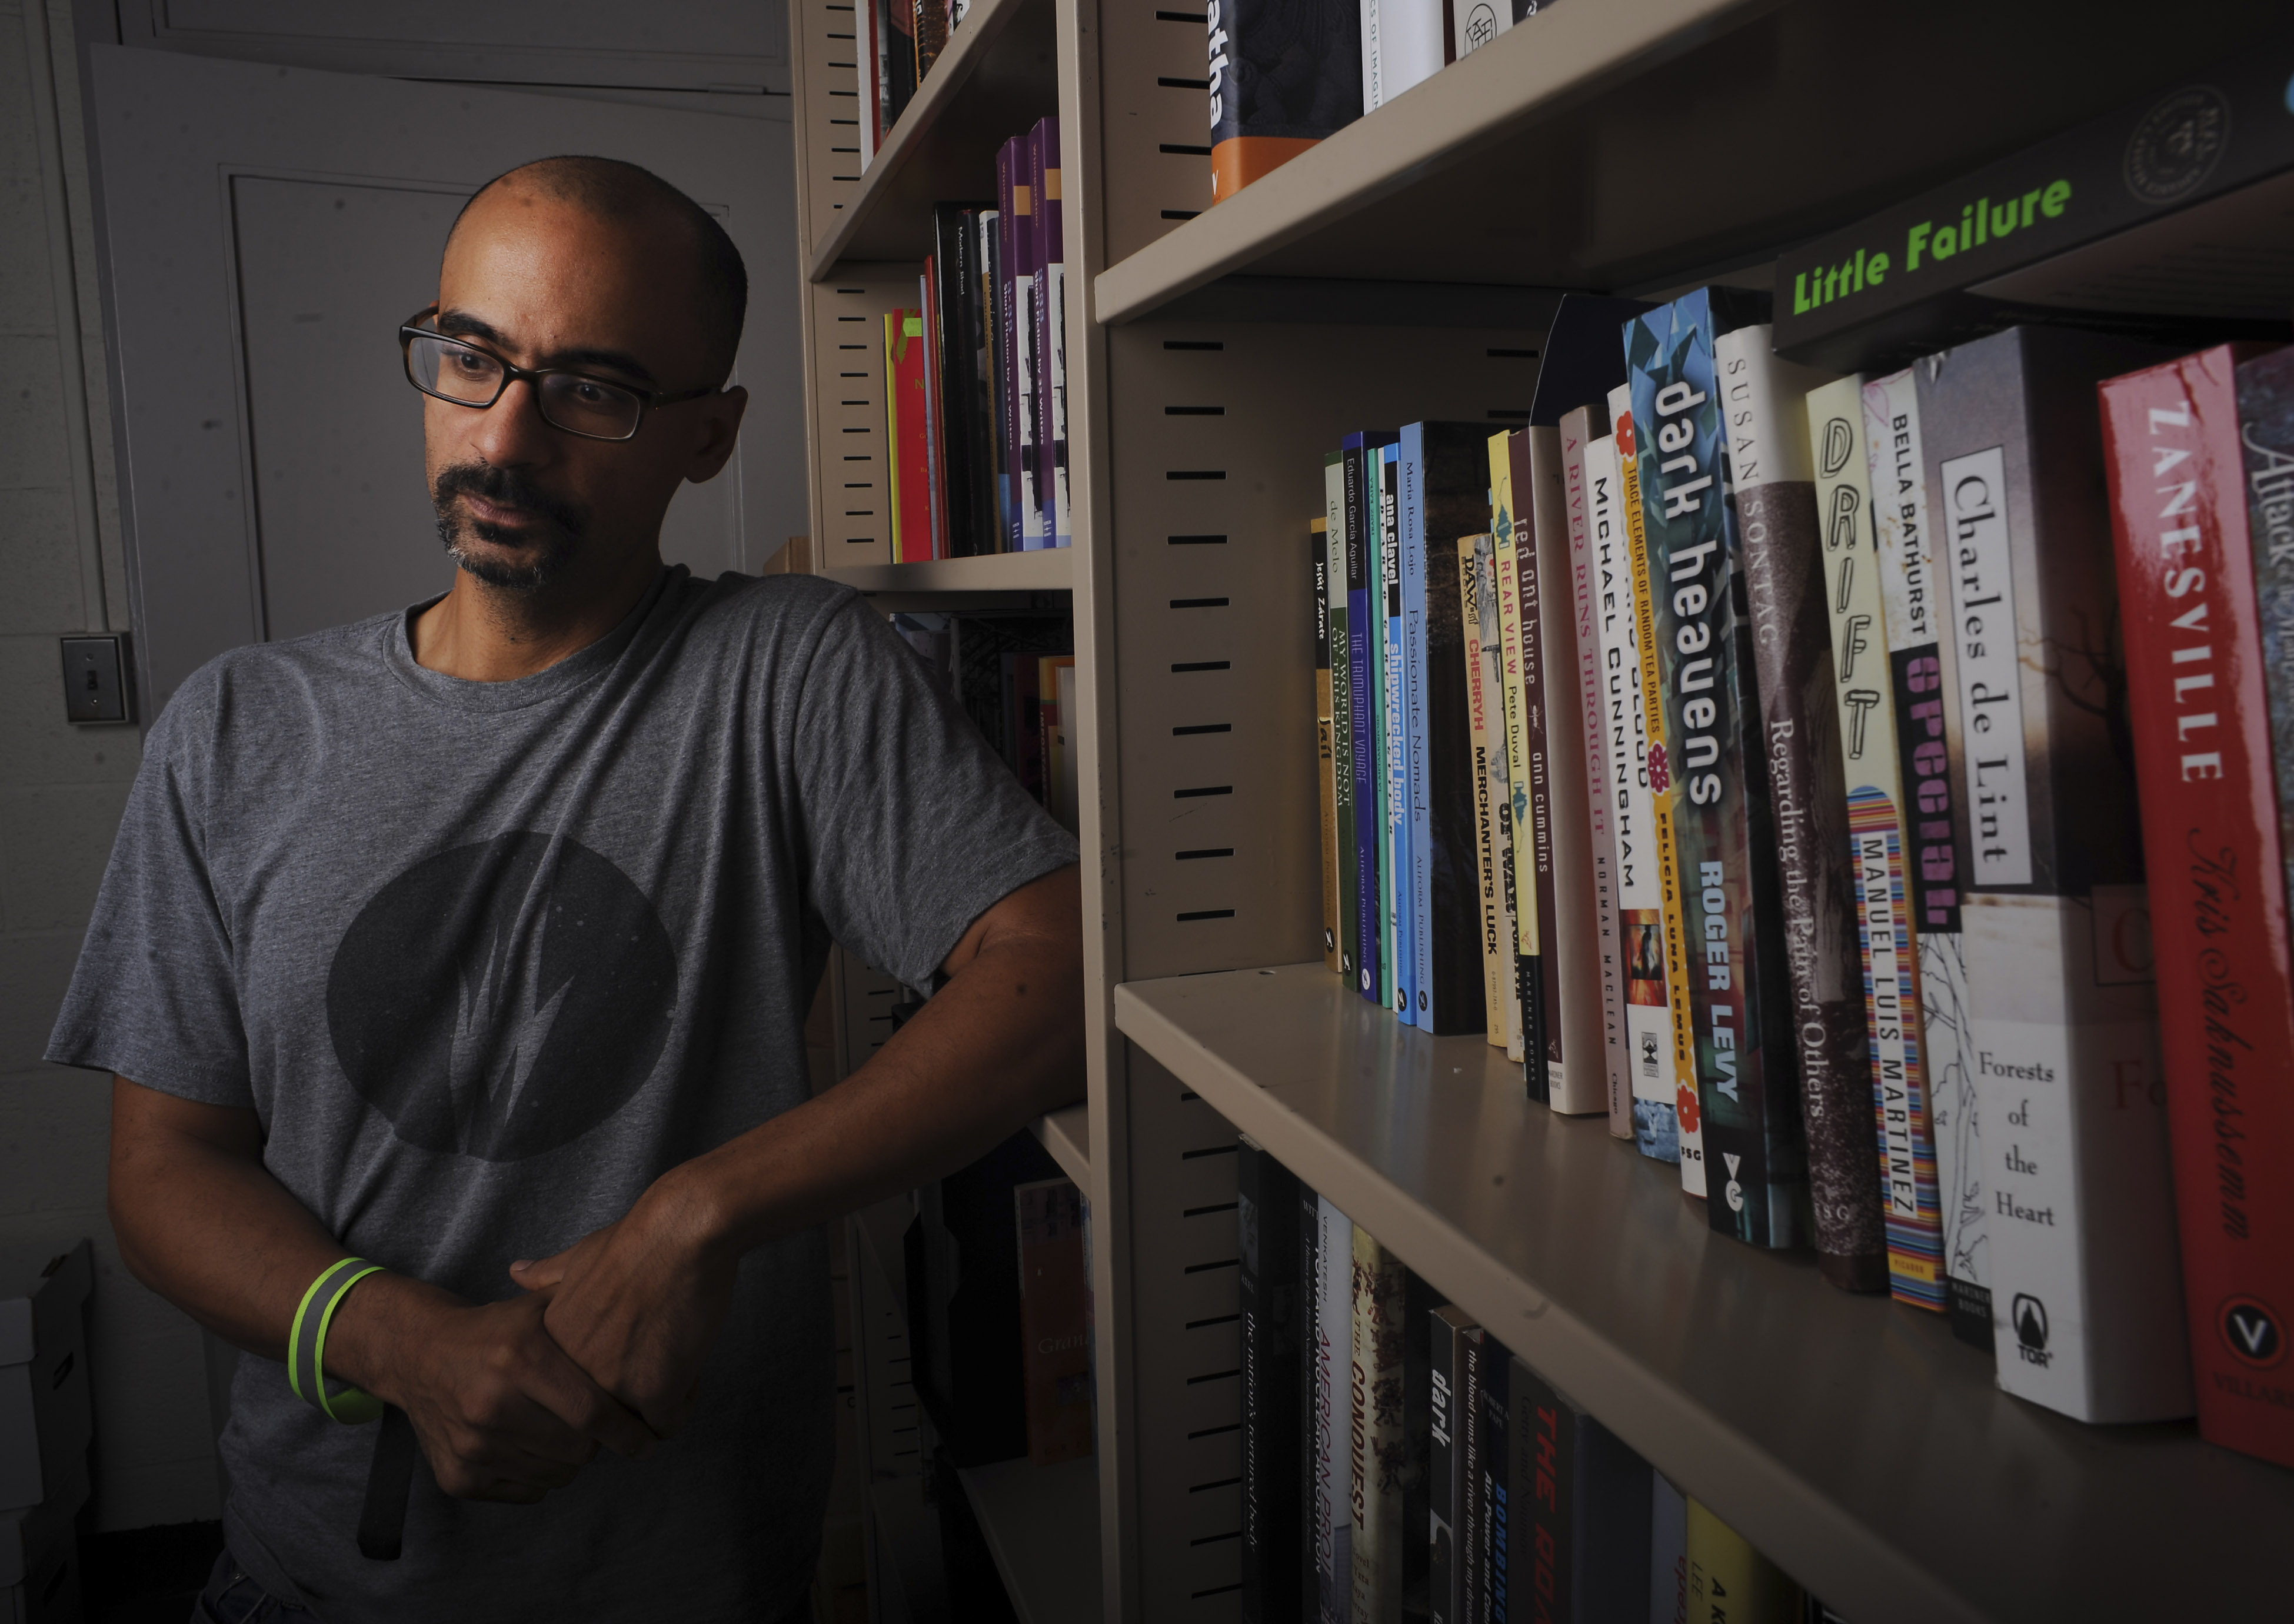 Pulitzer Prize writer Junot Diaz was photographed at his MIT office on September 12, 2013.